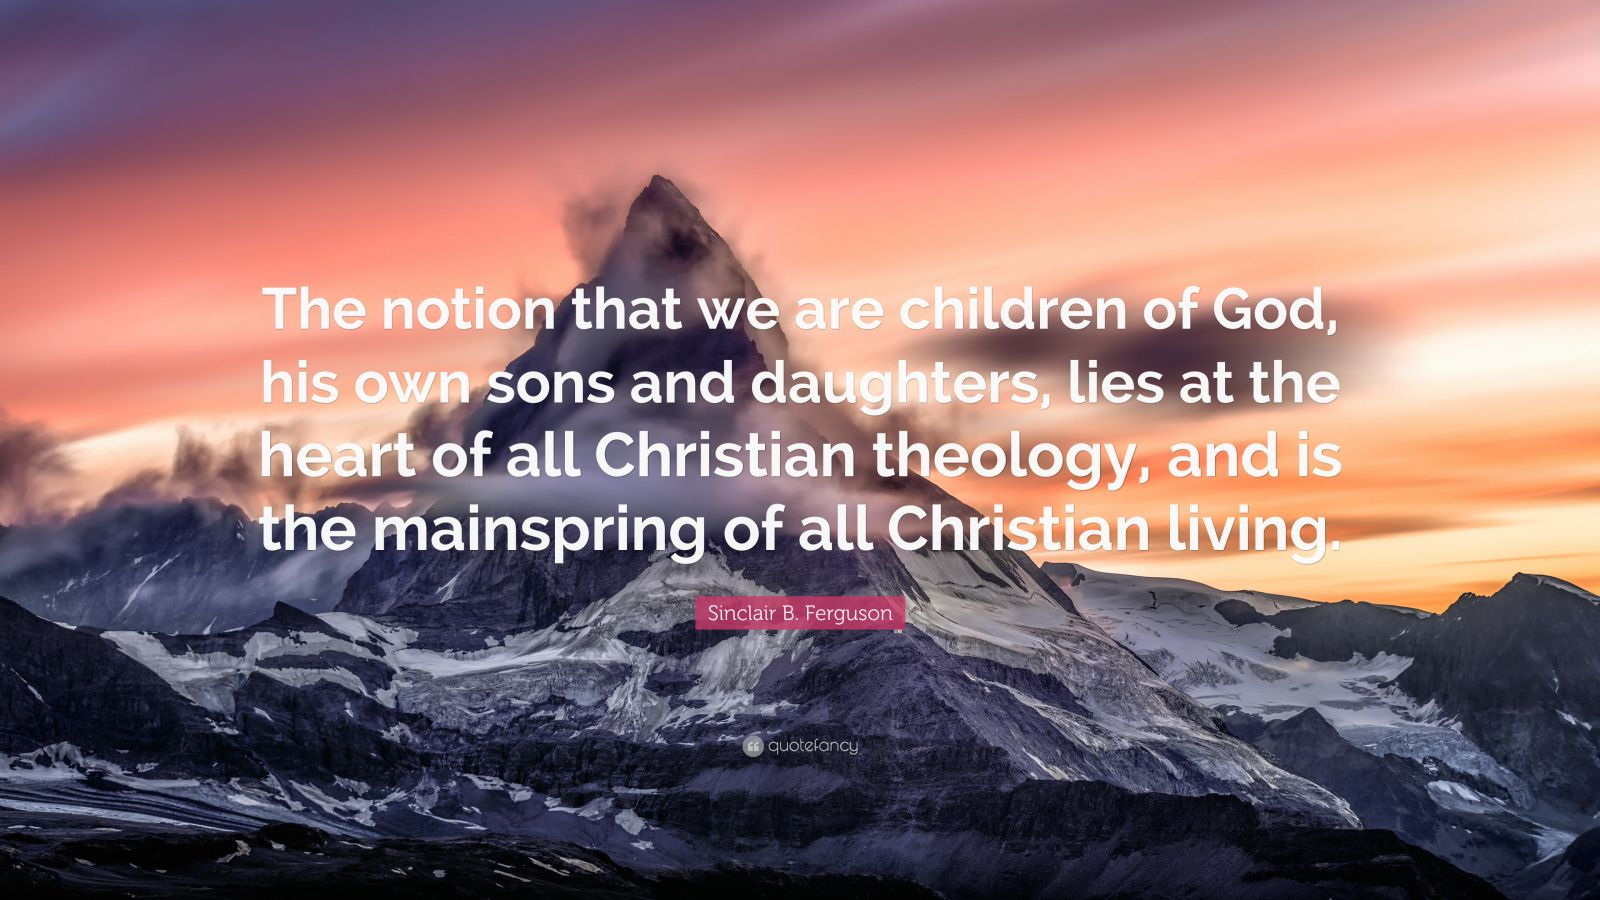 """Sinclair B. Ferguson Quote: """"The notion that we are children of God, his own sons and daughters, lies at the heart of all Christian theology, and is the mainspring of all Christian living."""""""